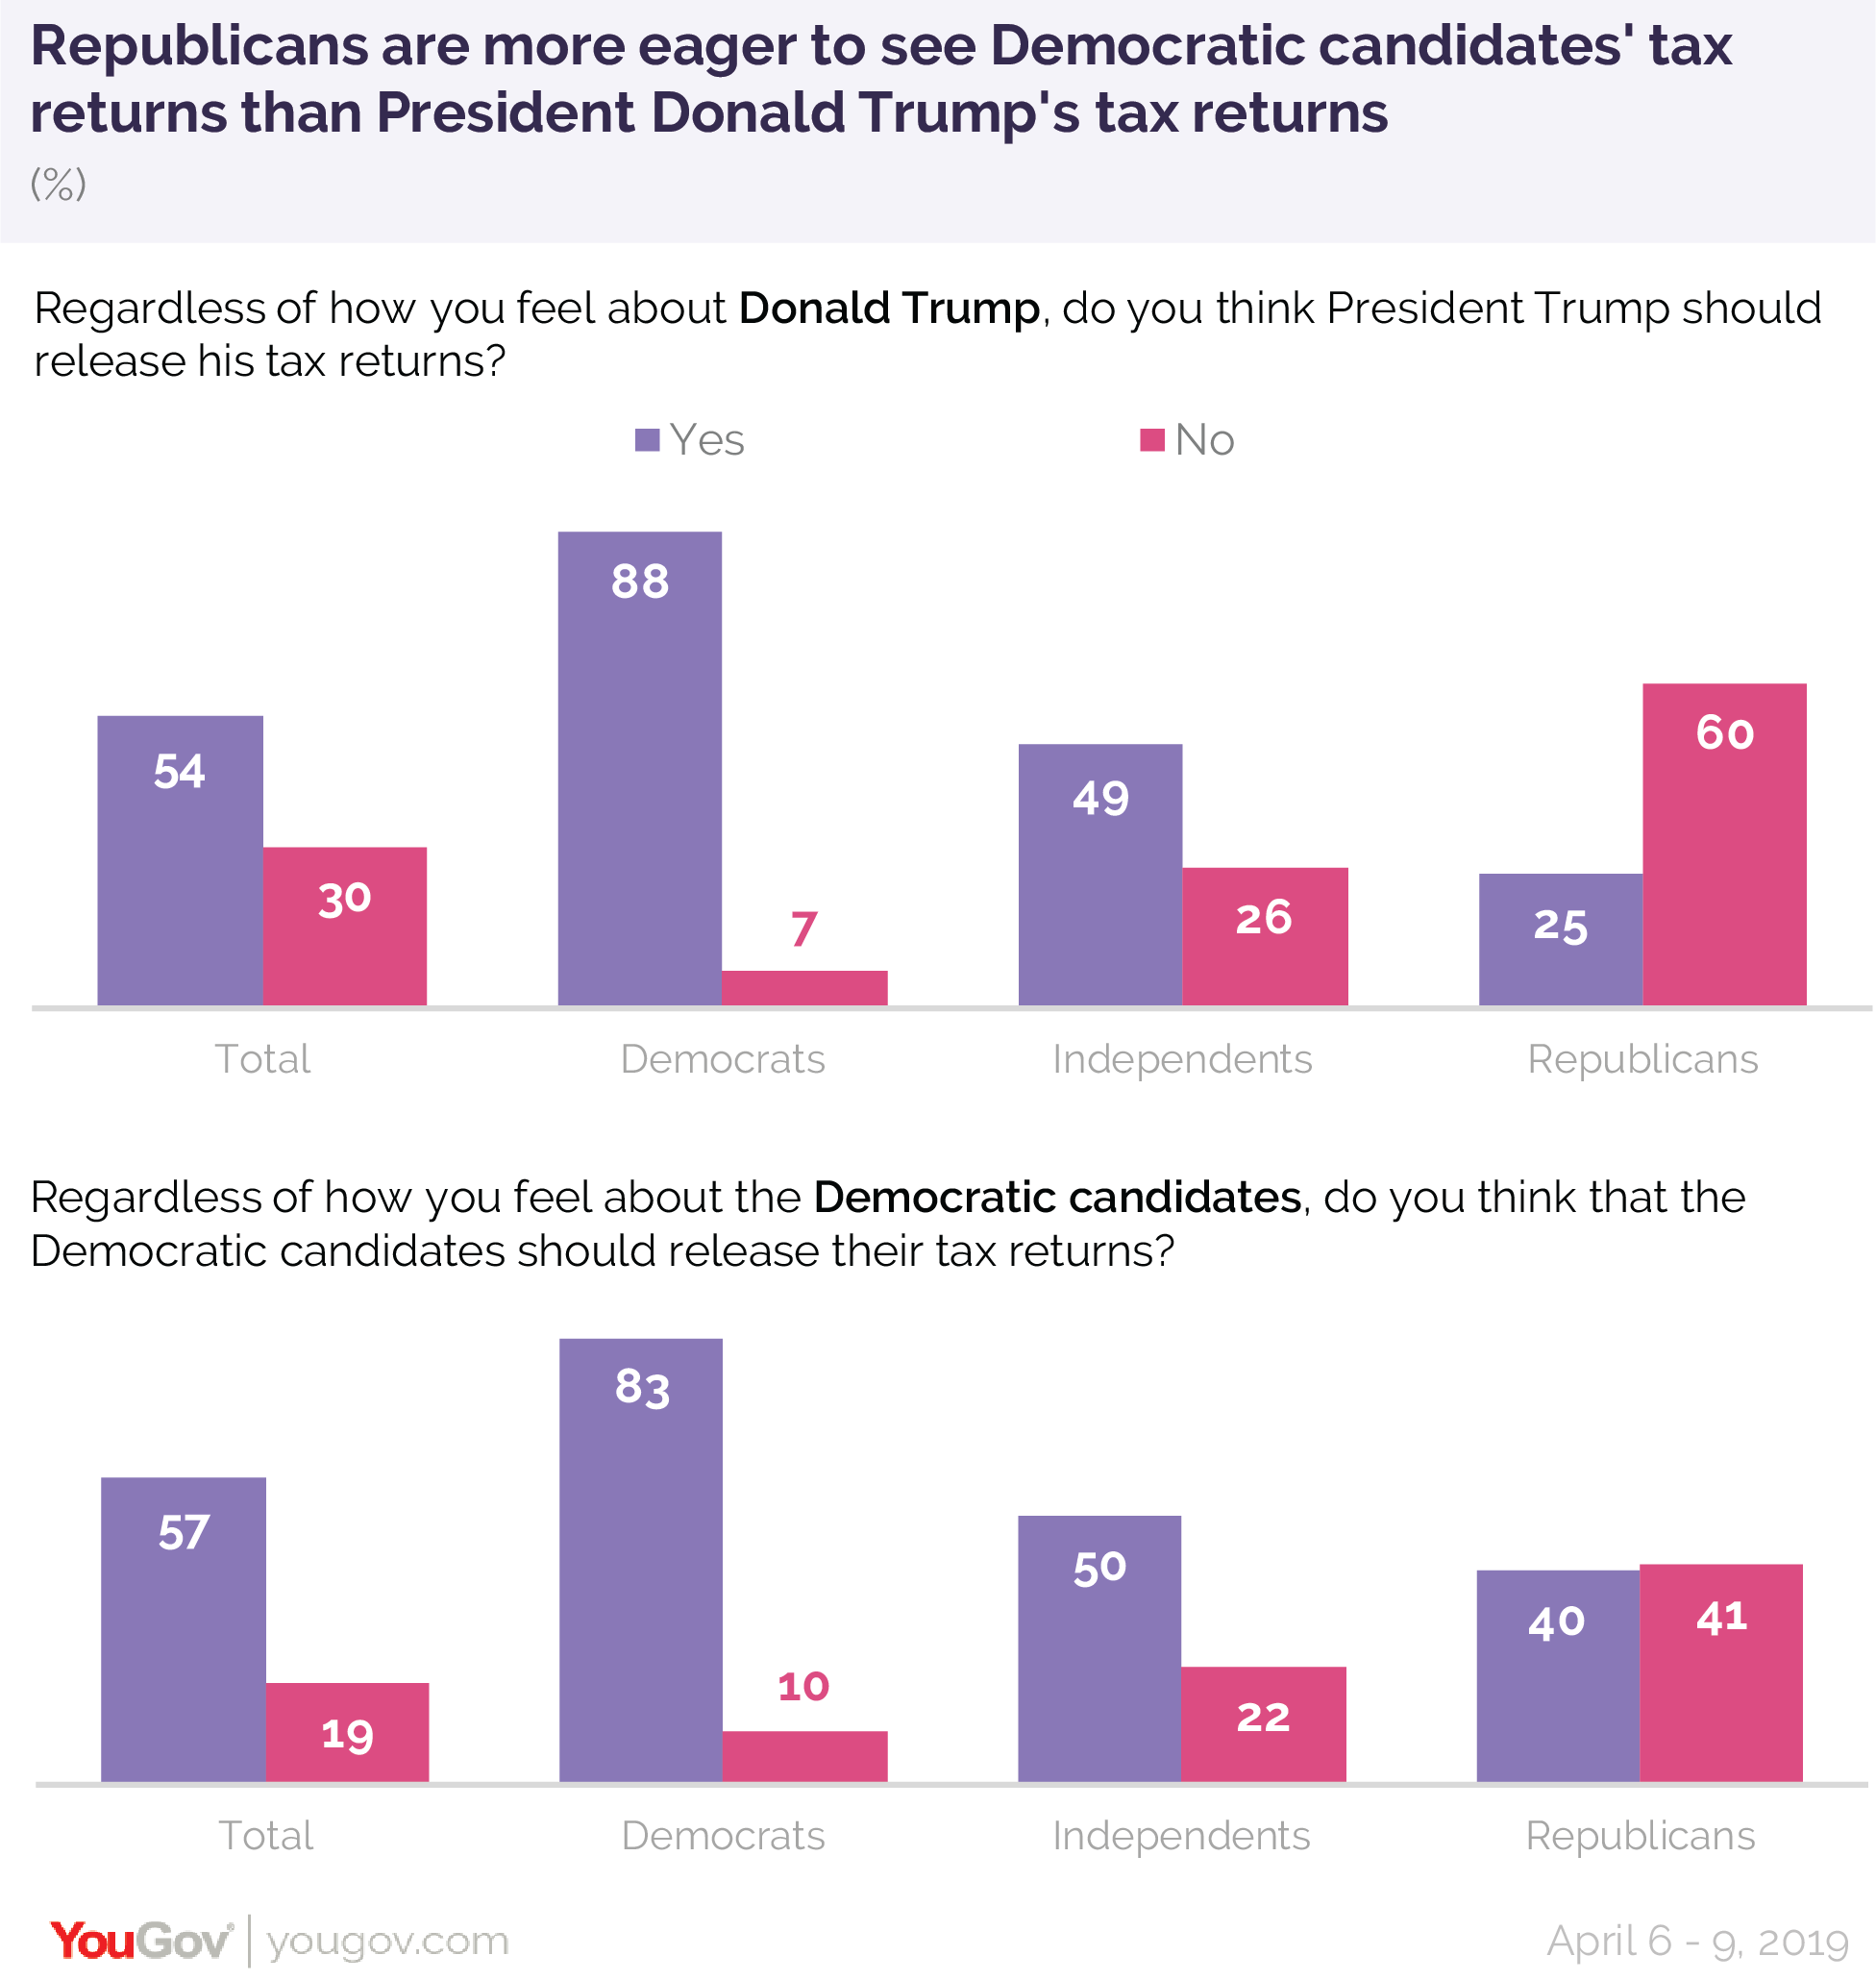 Republicans are more eager to see Democratic candidates' tax returns than President Donald Trump's tax returns